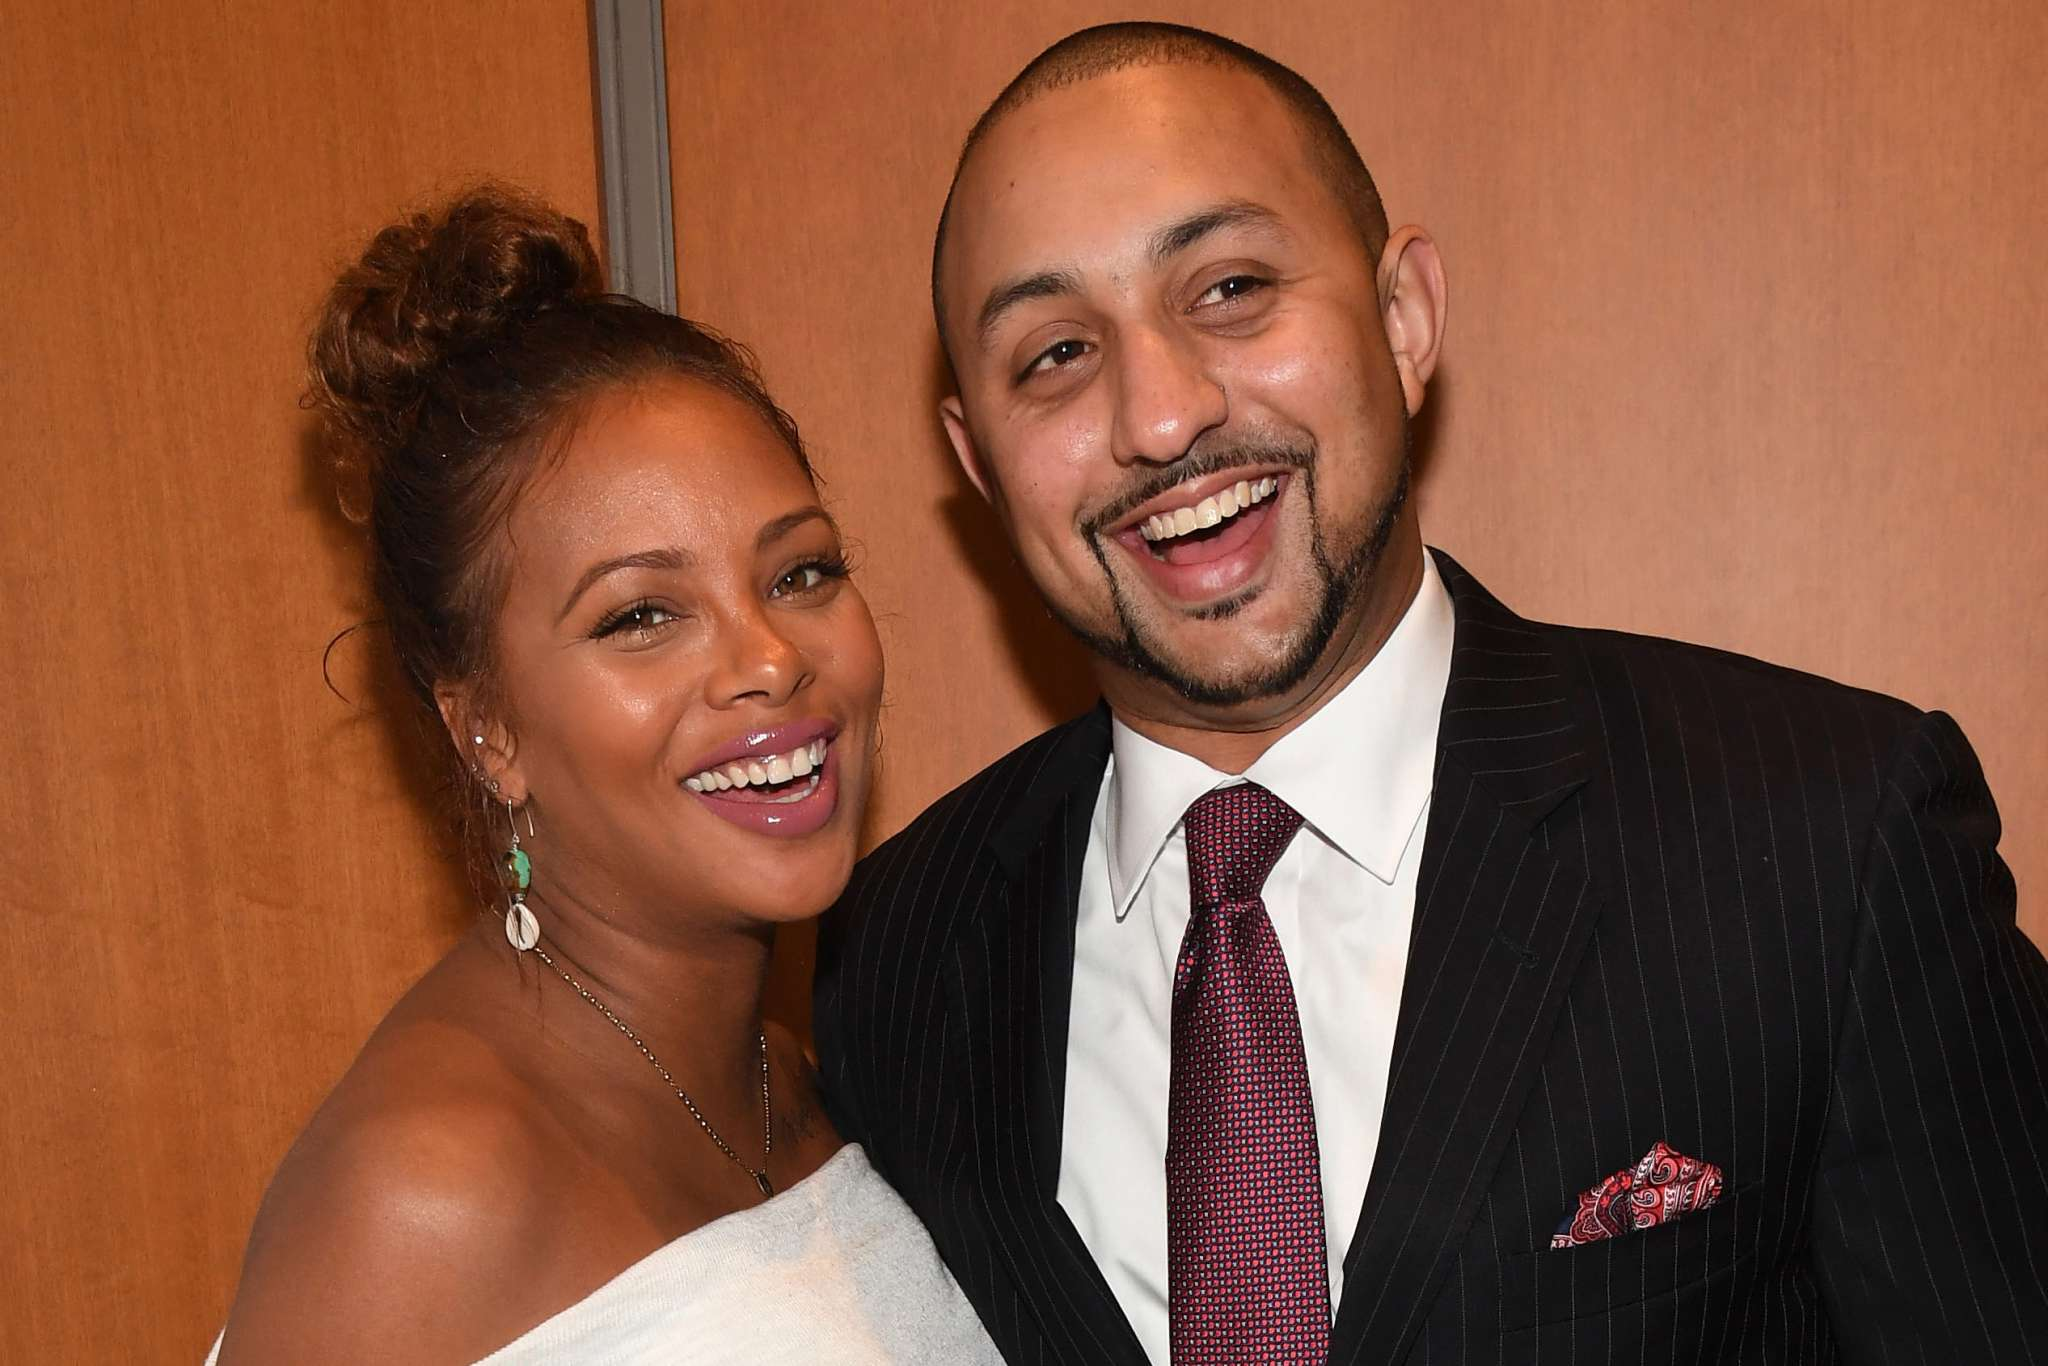 RHOA's Eva Marcille Celebrates Her Son, Mikey's First Birthday With Sweet Photos From The Party